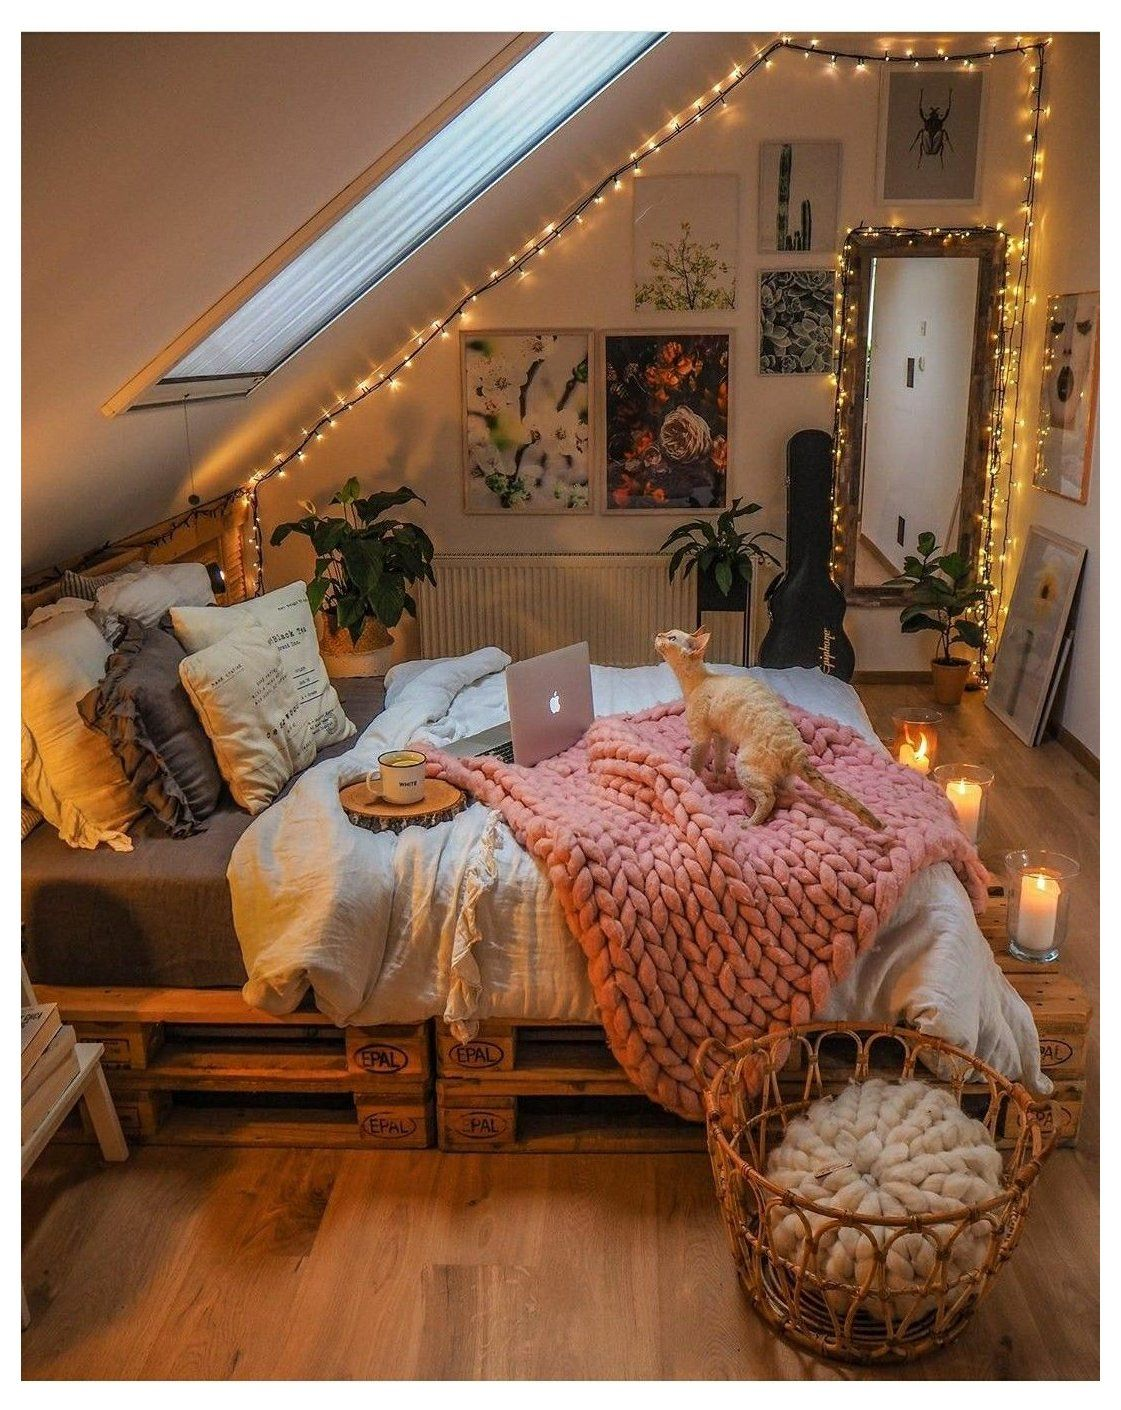 20 Cozy Bedroom Ideas For Fall Autumn Room Decor Warm Colour Palettes Earthy Tones Redecorate Bedroom Room Inspiration Bedroom Bedroom Inspiration Cozy